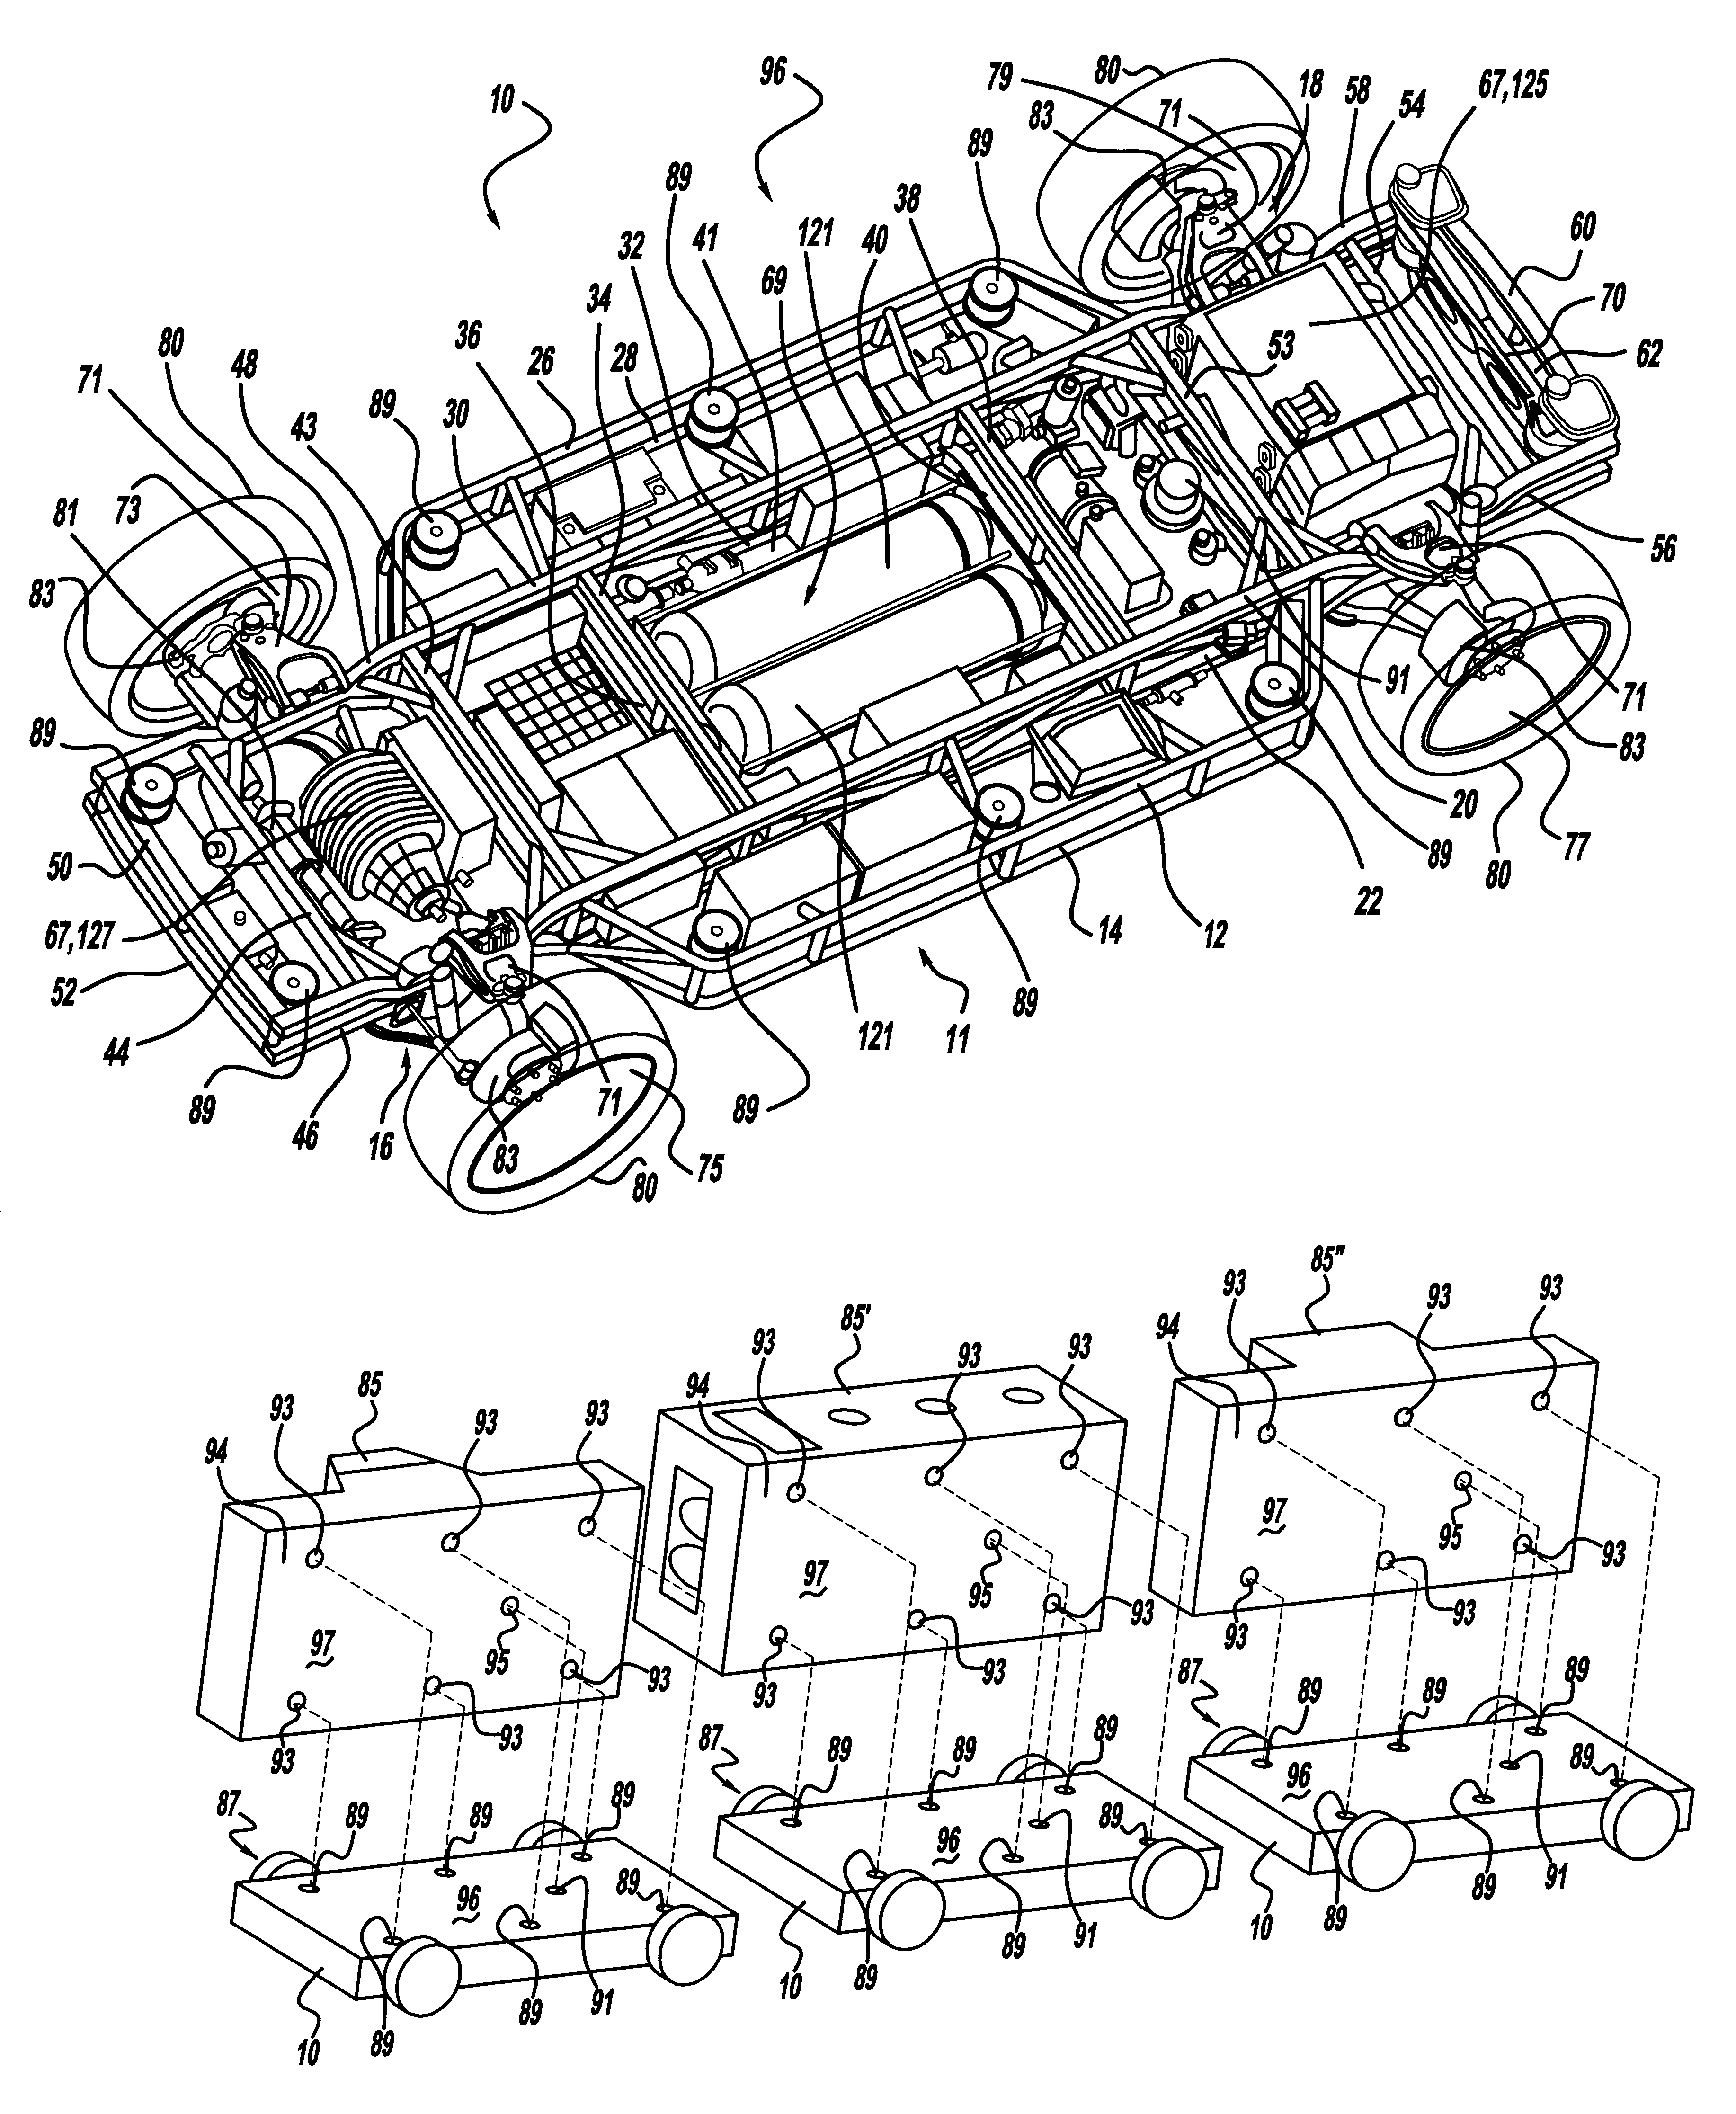 1984 corvette wiring diagram chis 1985 corvette fuse box